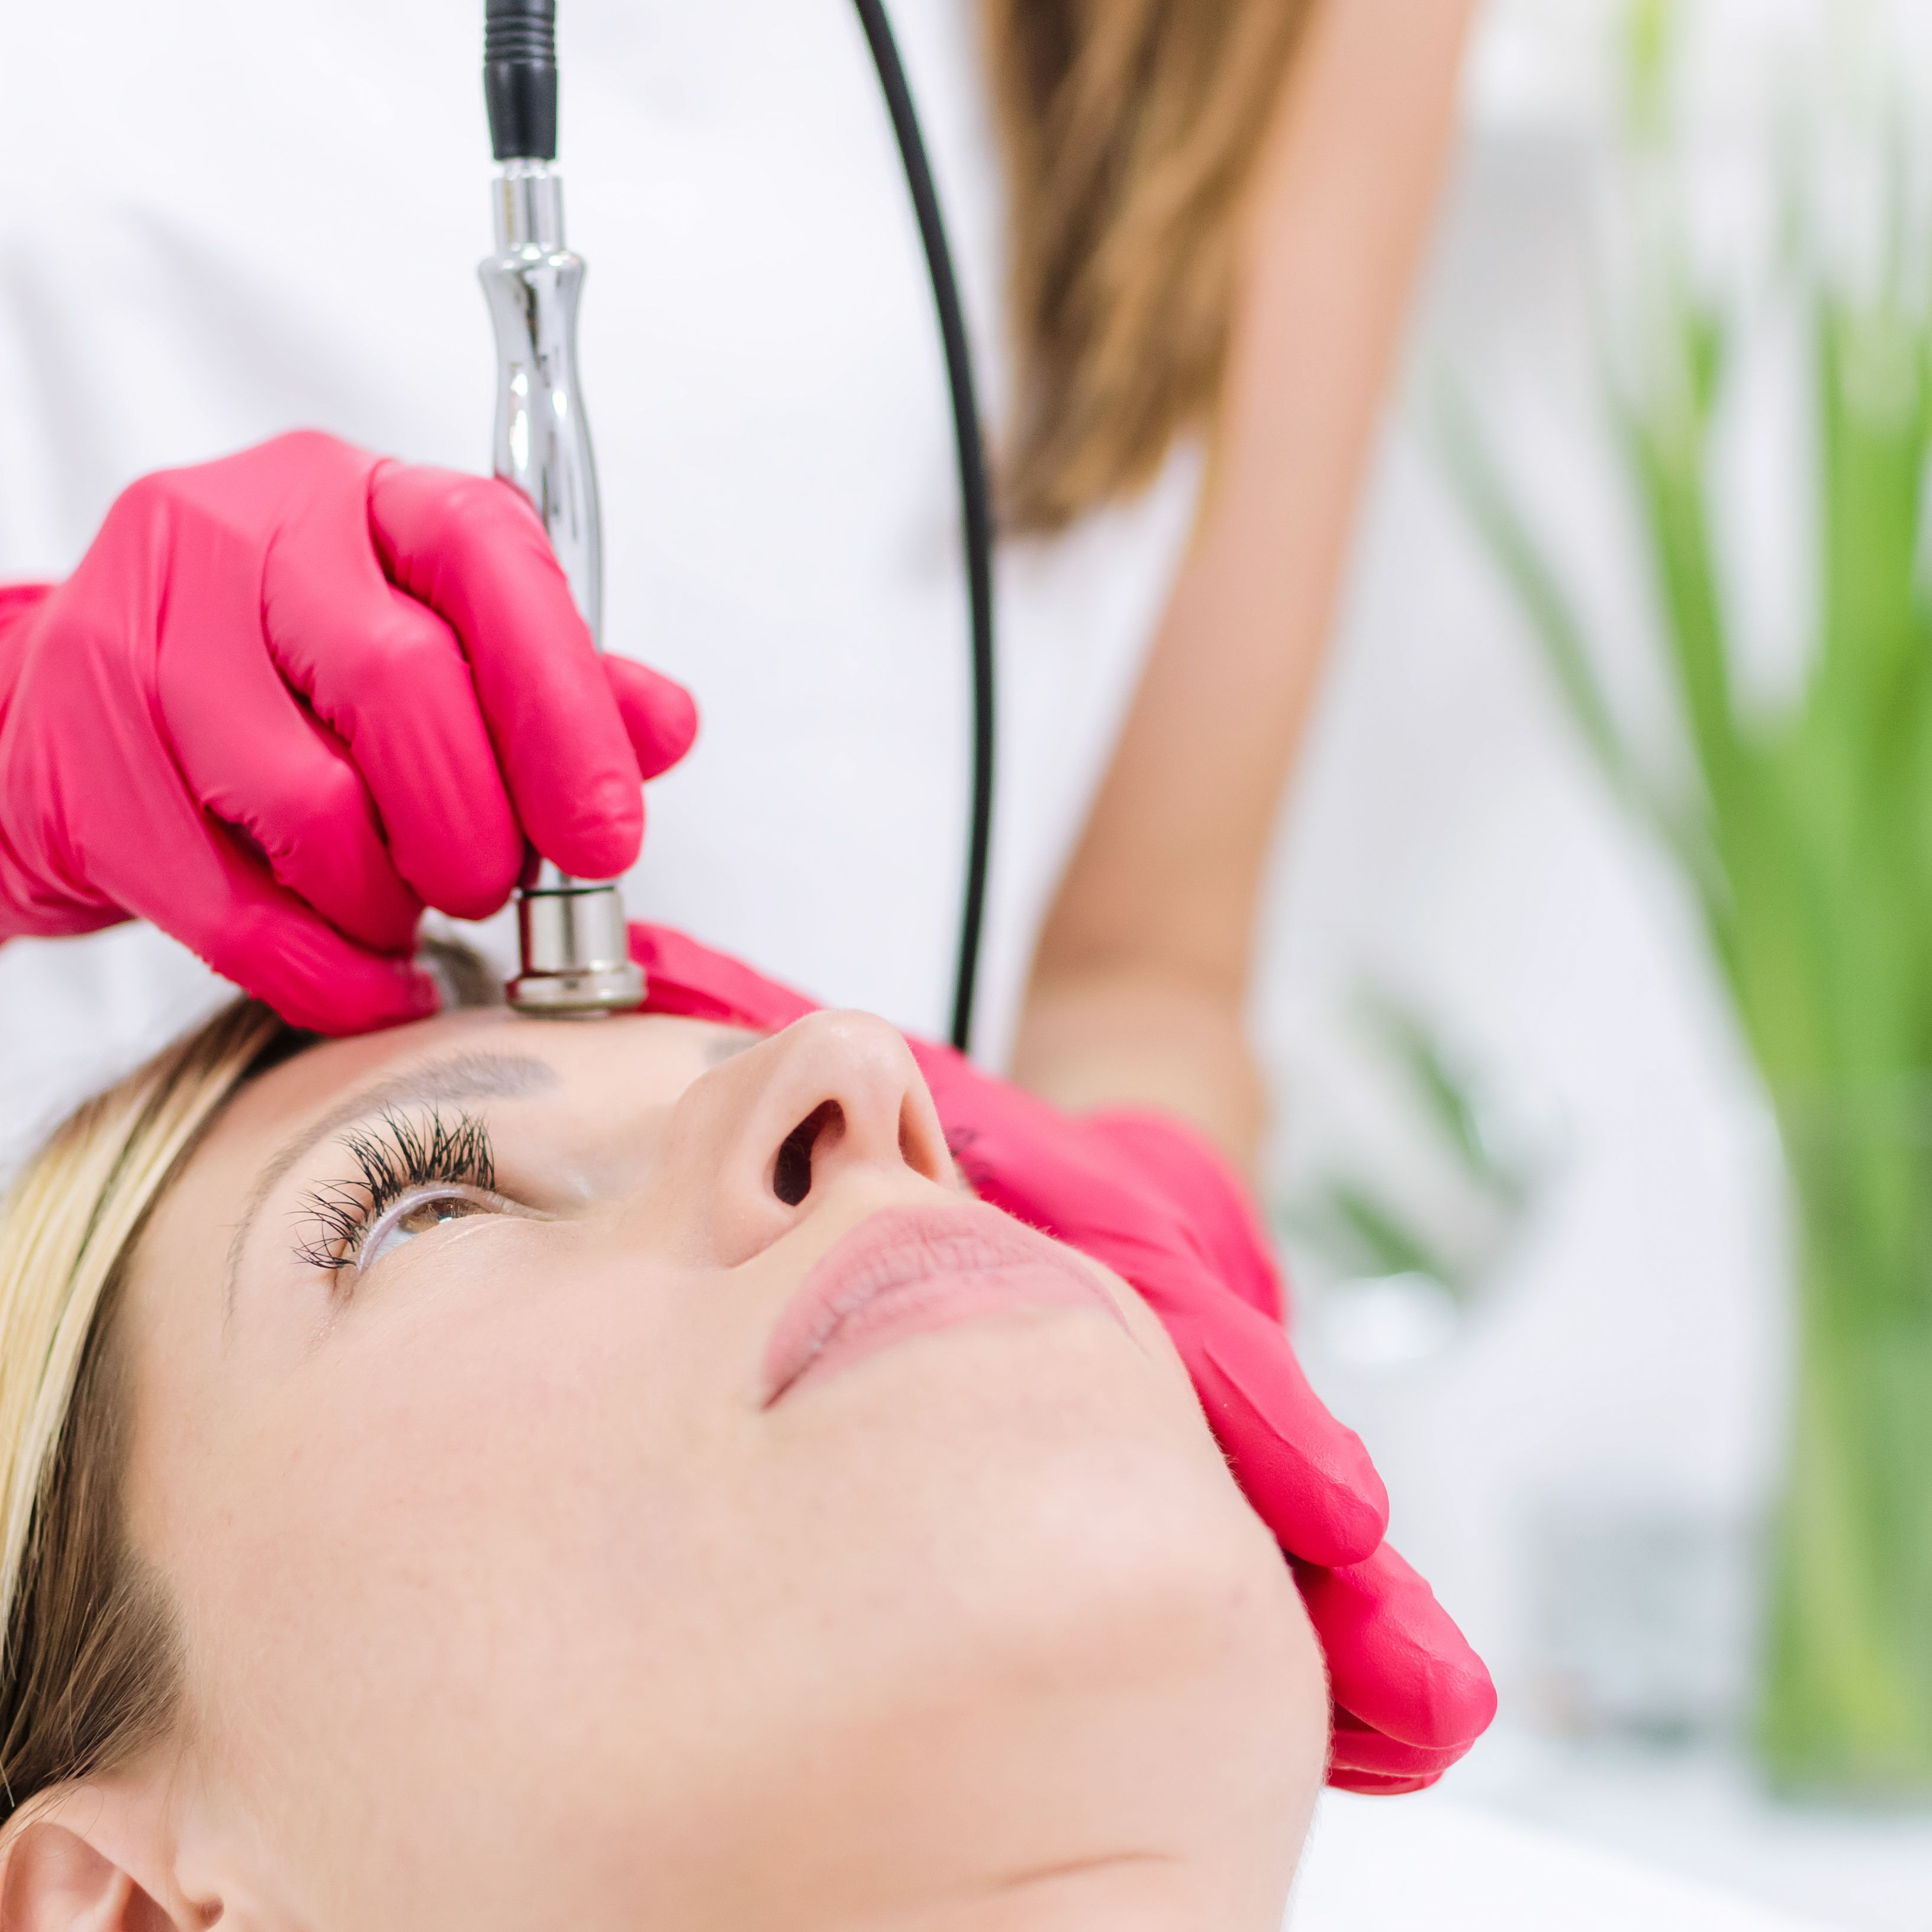 The Effects of Microdermabrasion on the Skin